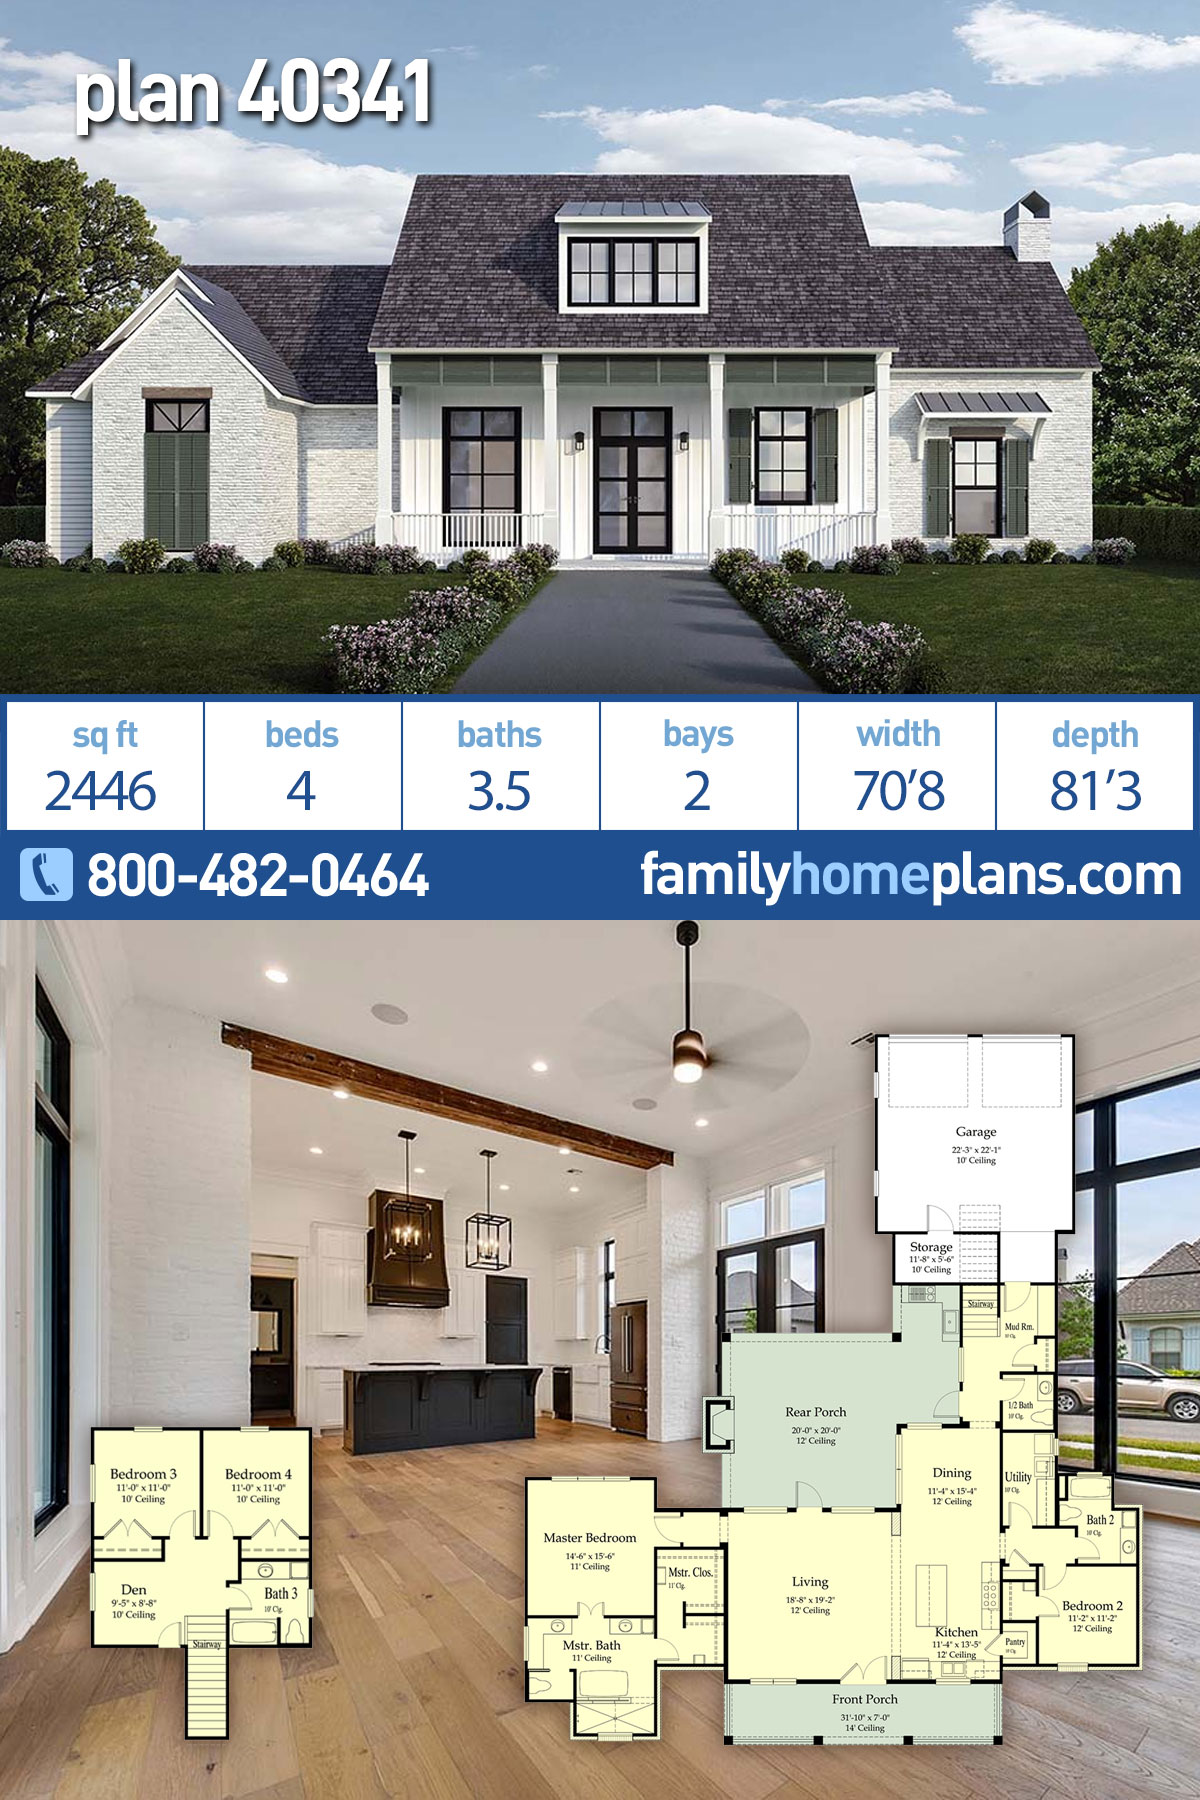 Country, Farmhouse, Southern House Plan 40341 with 4 Beds, 4 Baths, 2 Car Garage